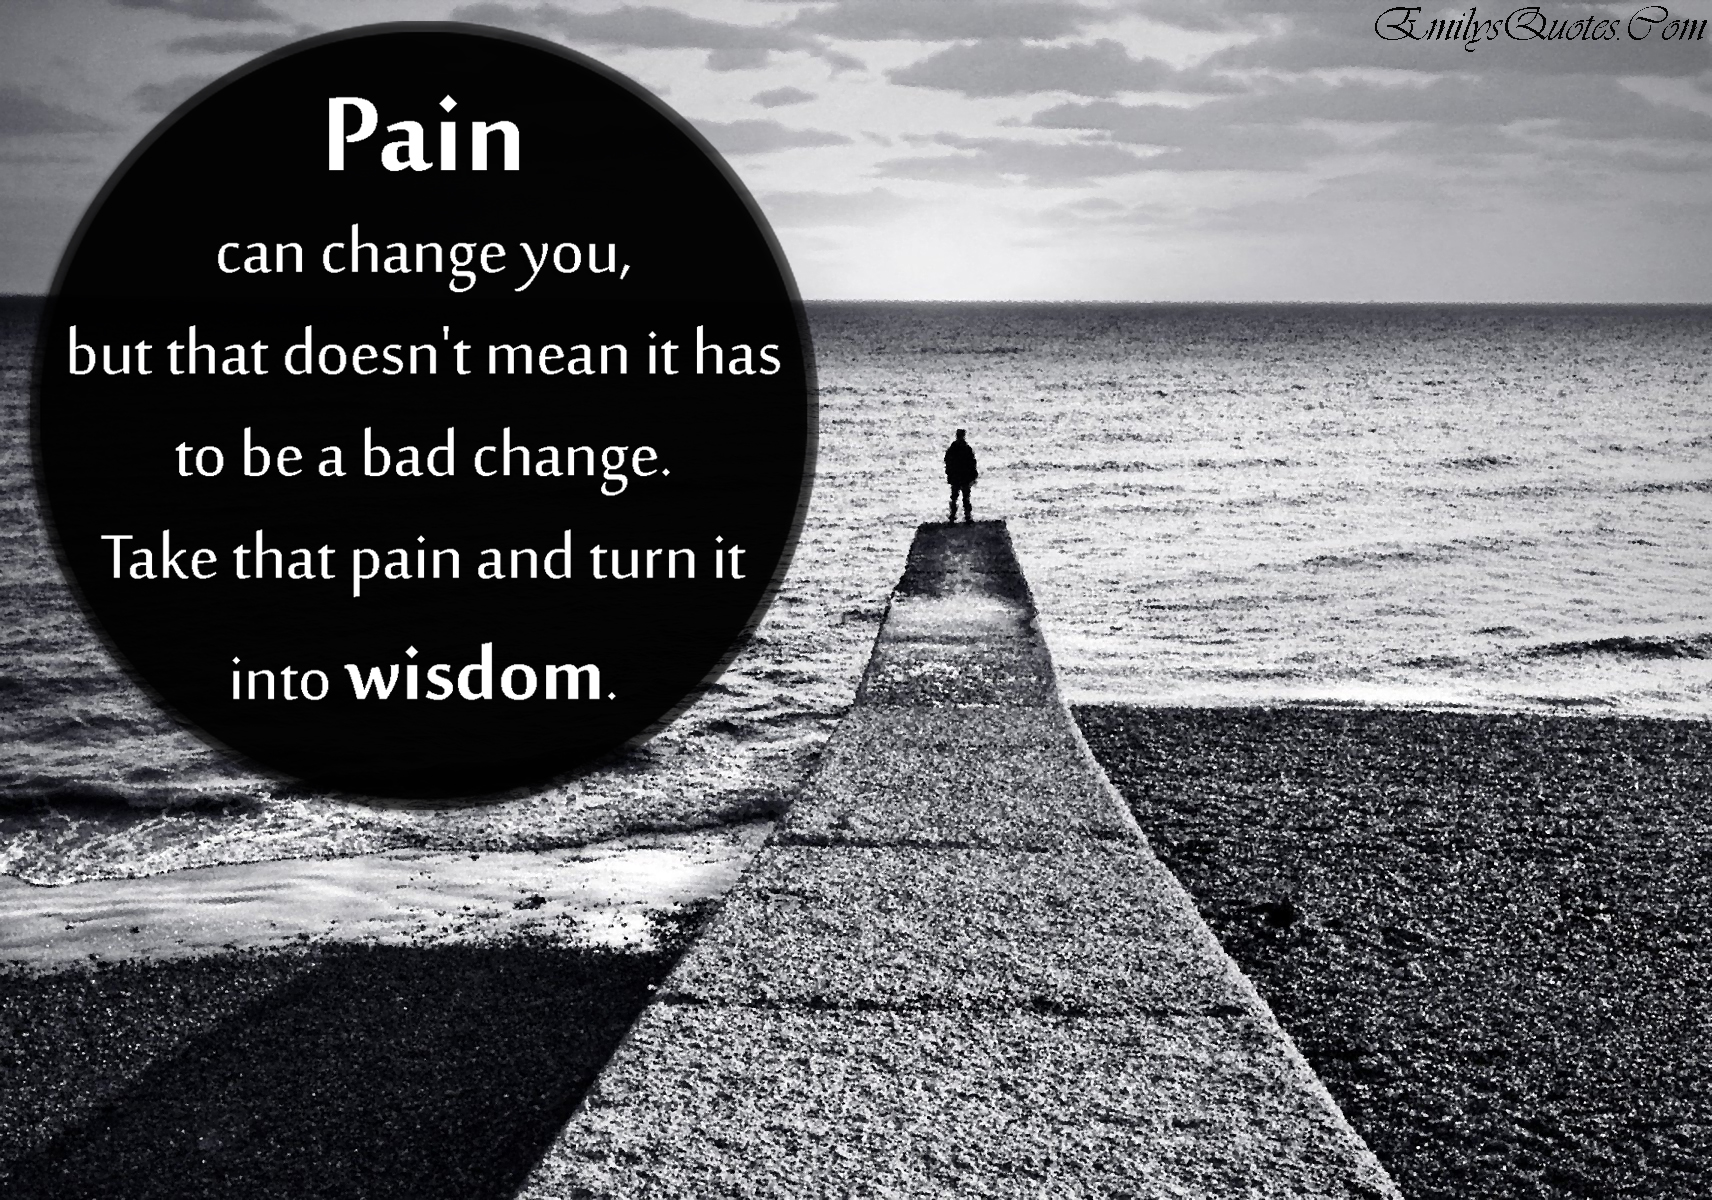 EmilysQuotes.Com - pain, change, wisdom, being a good person, unknown, inspirational